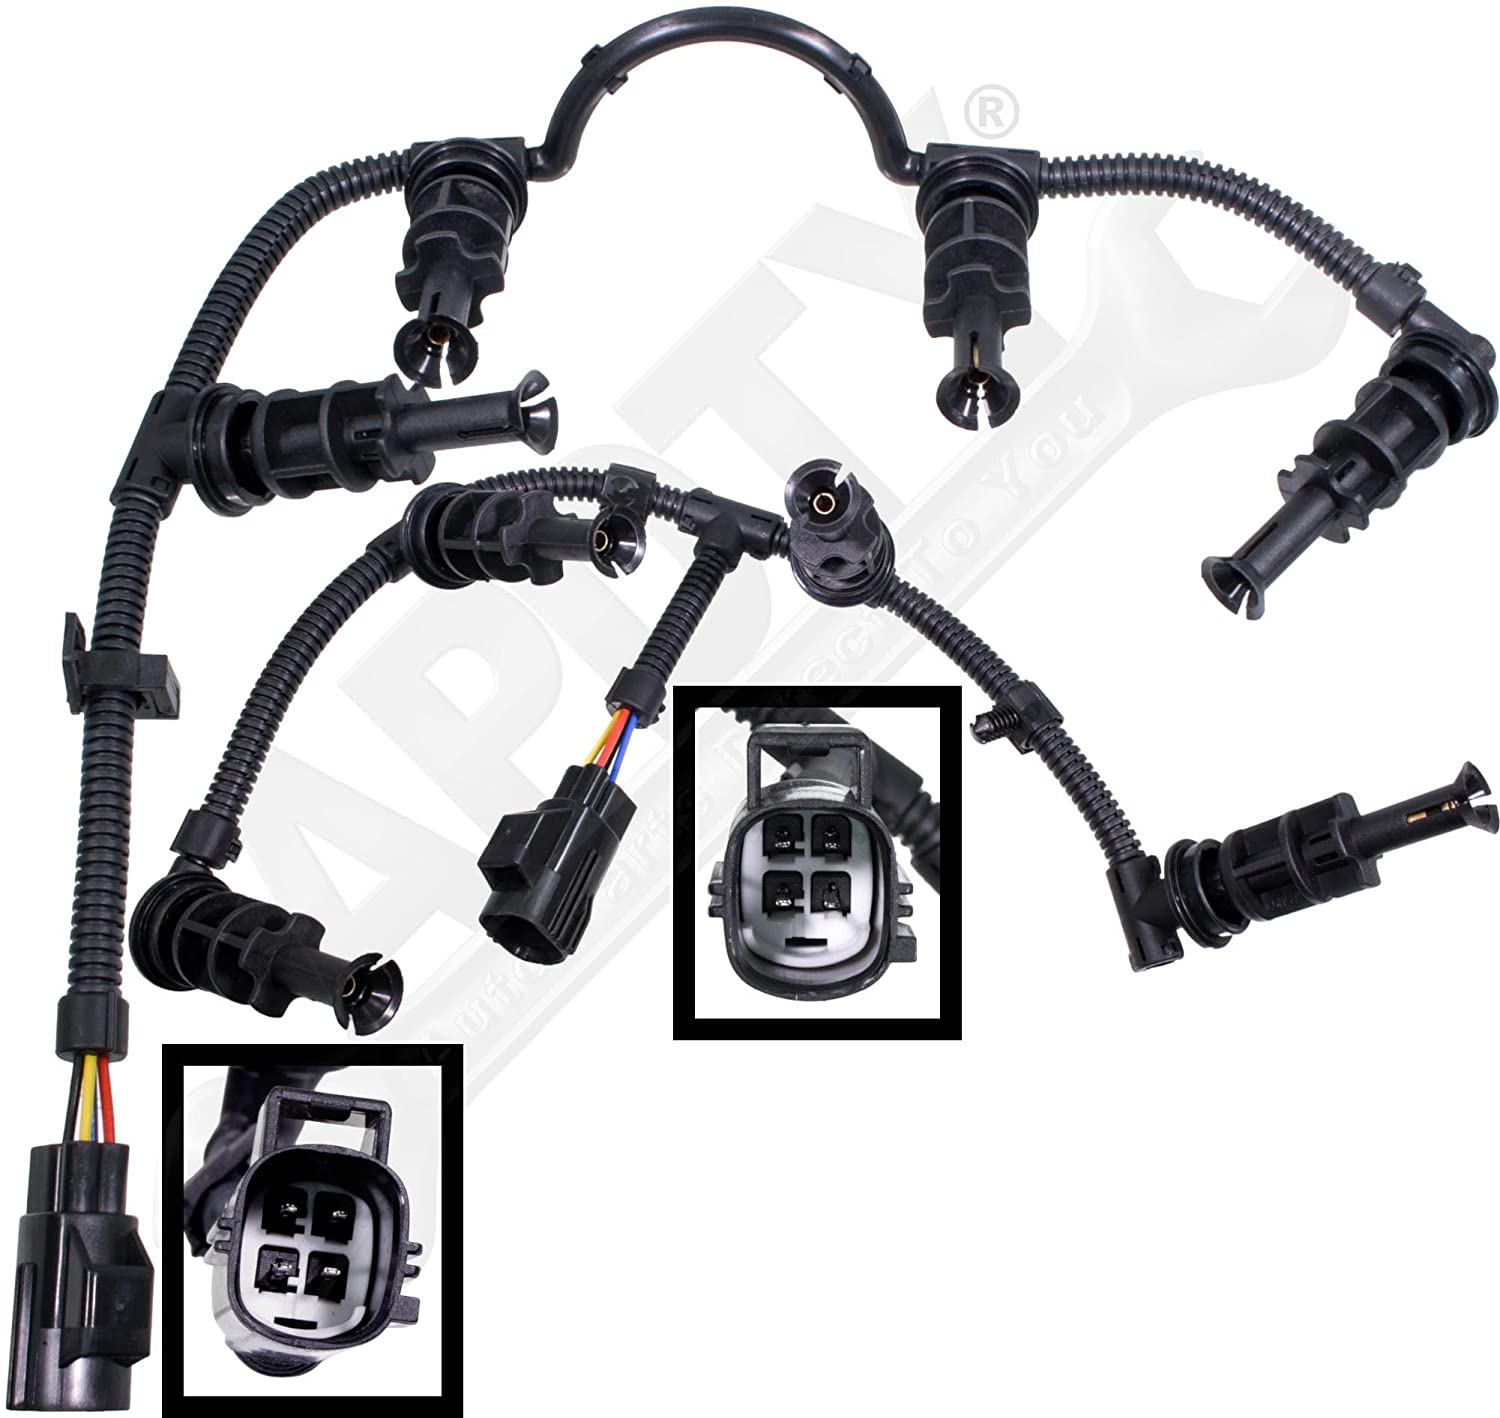 Apdty 035419 Trailer Wiring Harness Plug Connector Fits 1997 2010 7 Pin Ford Truck